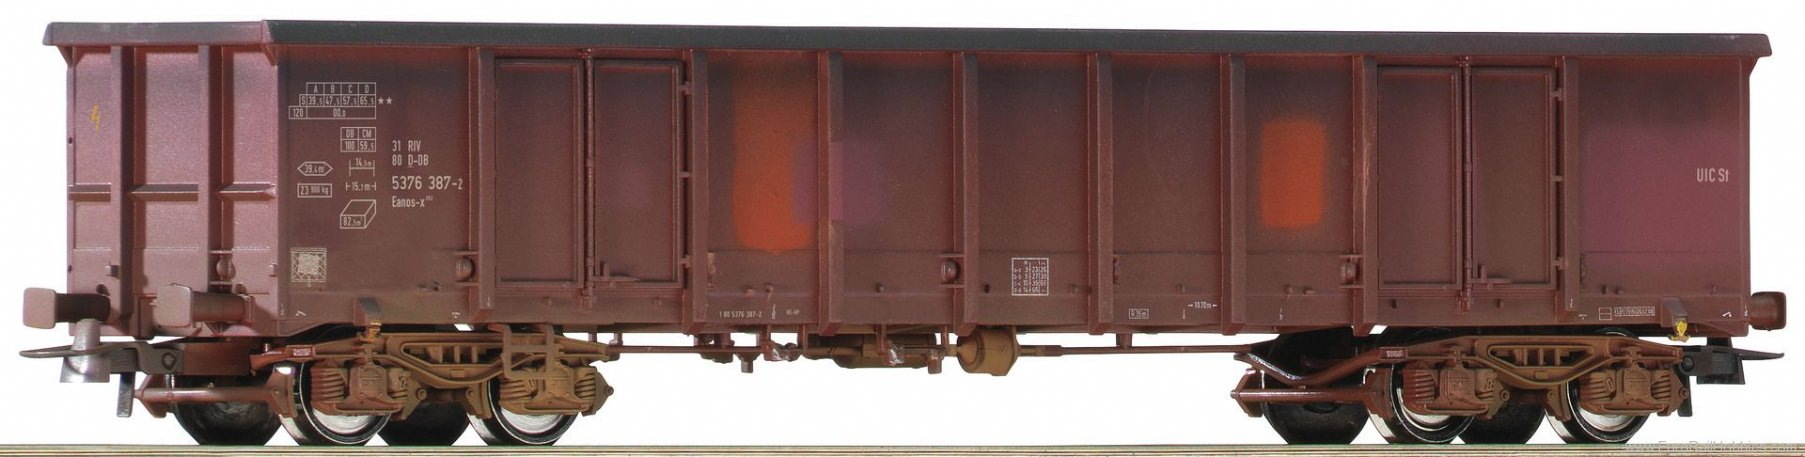 Roco 75995 31805376 413-6, open goods wagon weathered, D